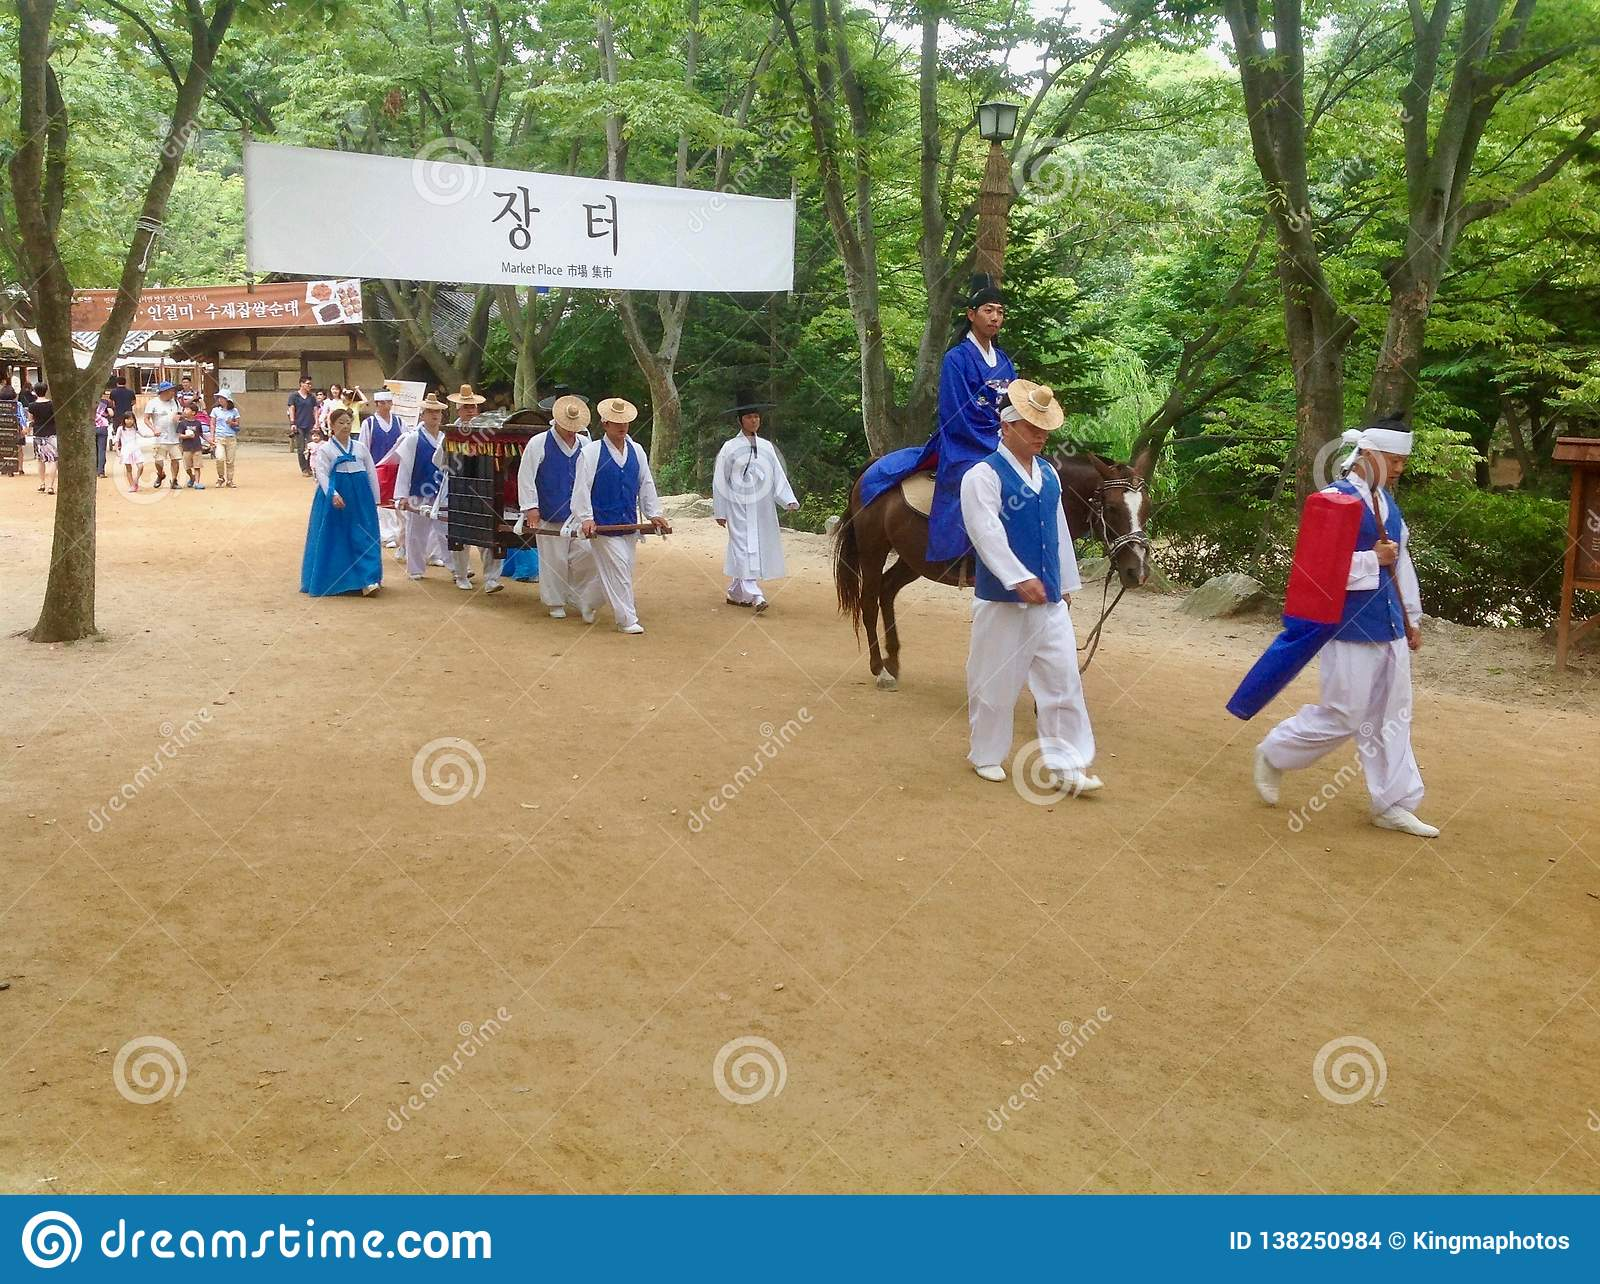 A group of traditionally dressed Koreans walk through the village for the tourist show